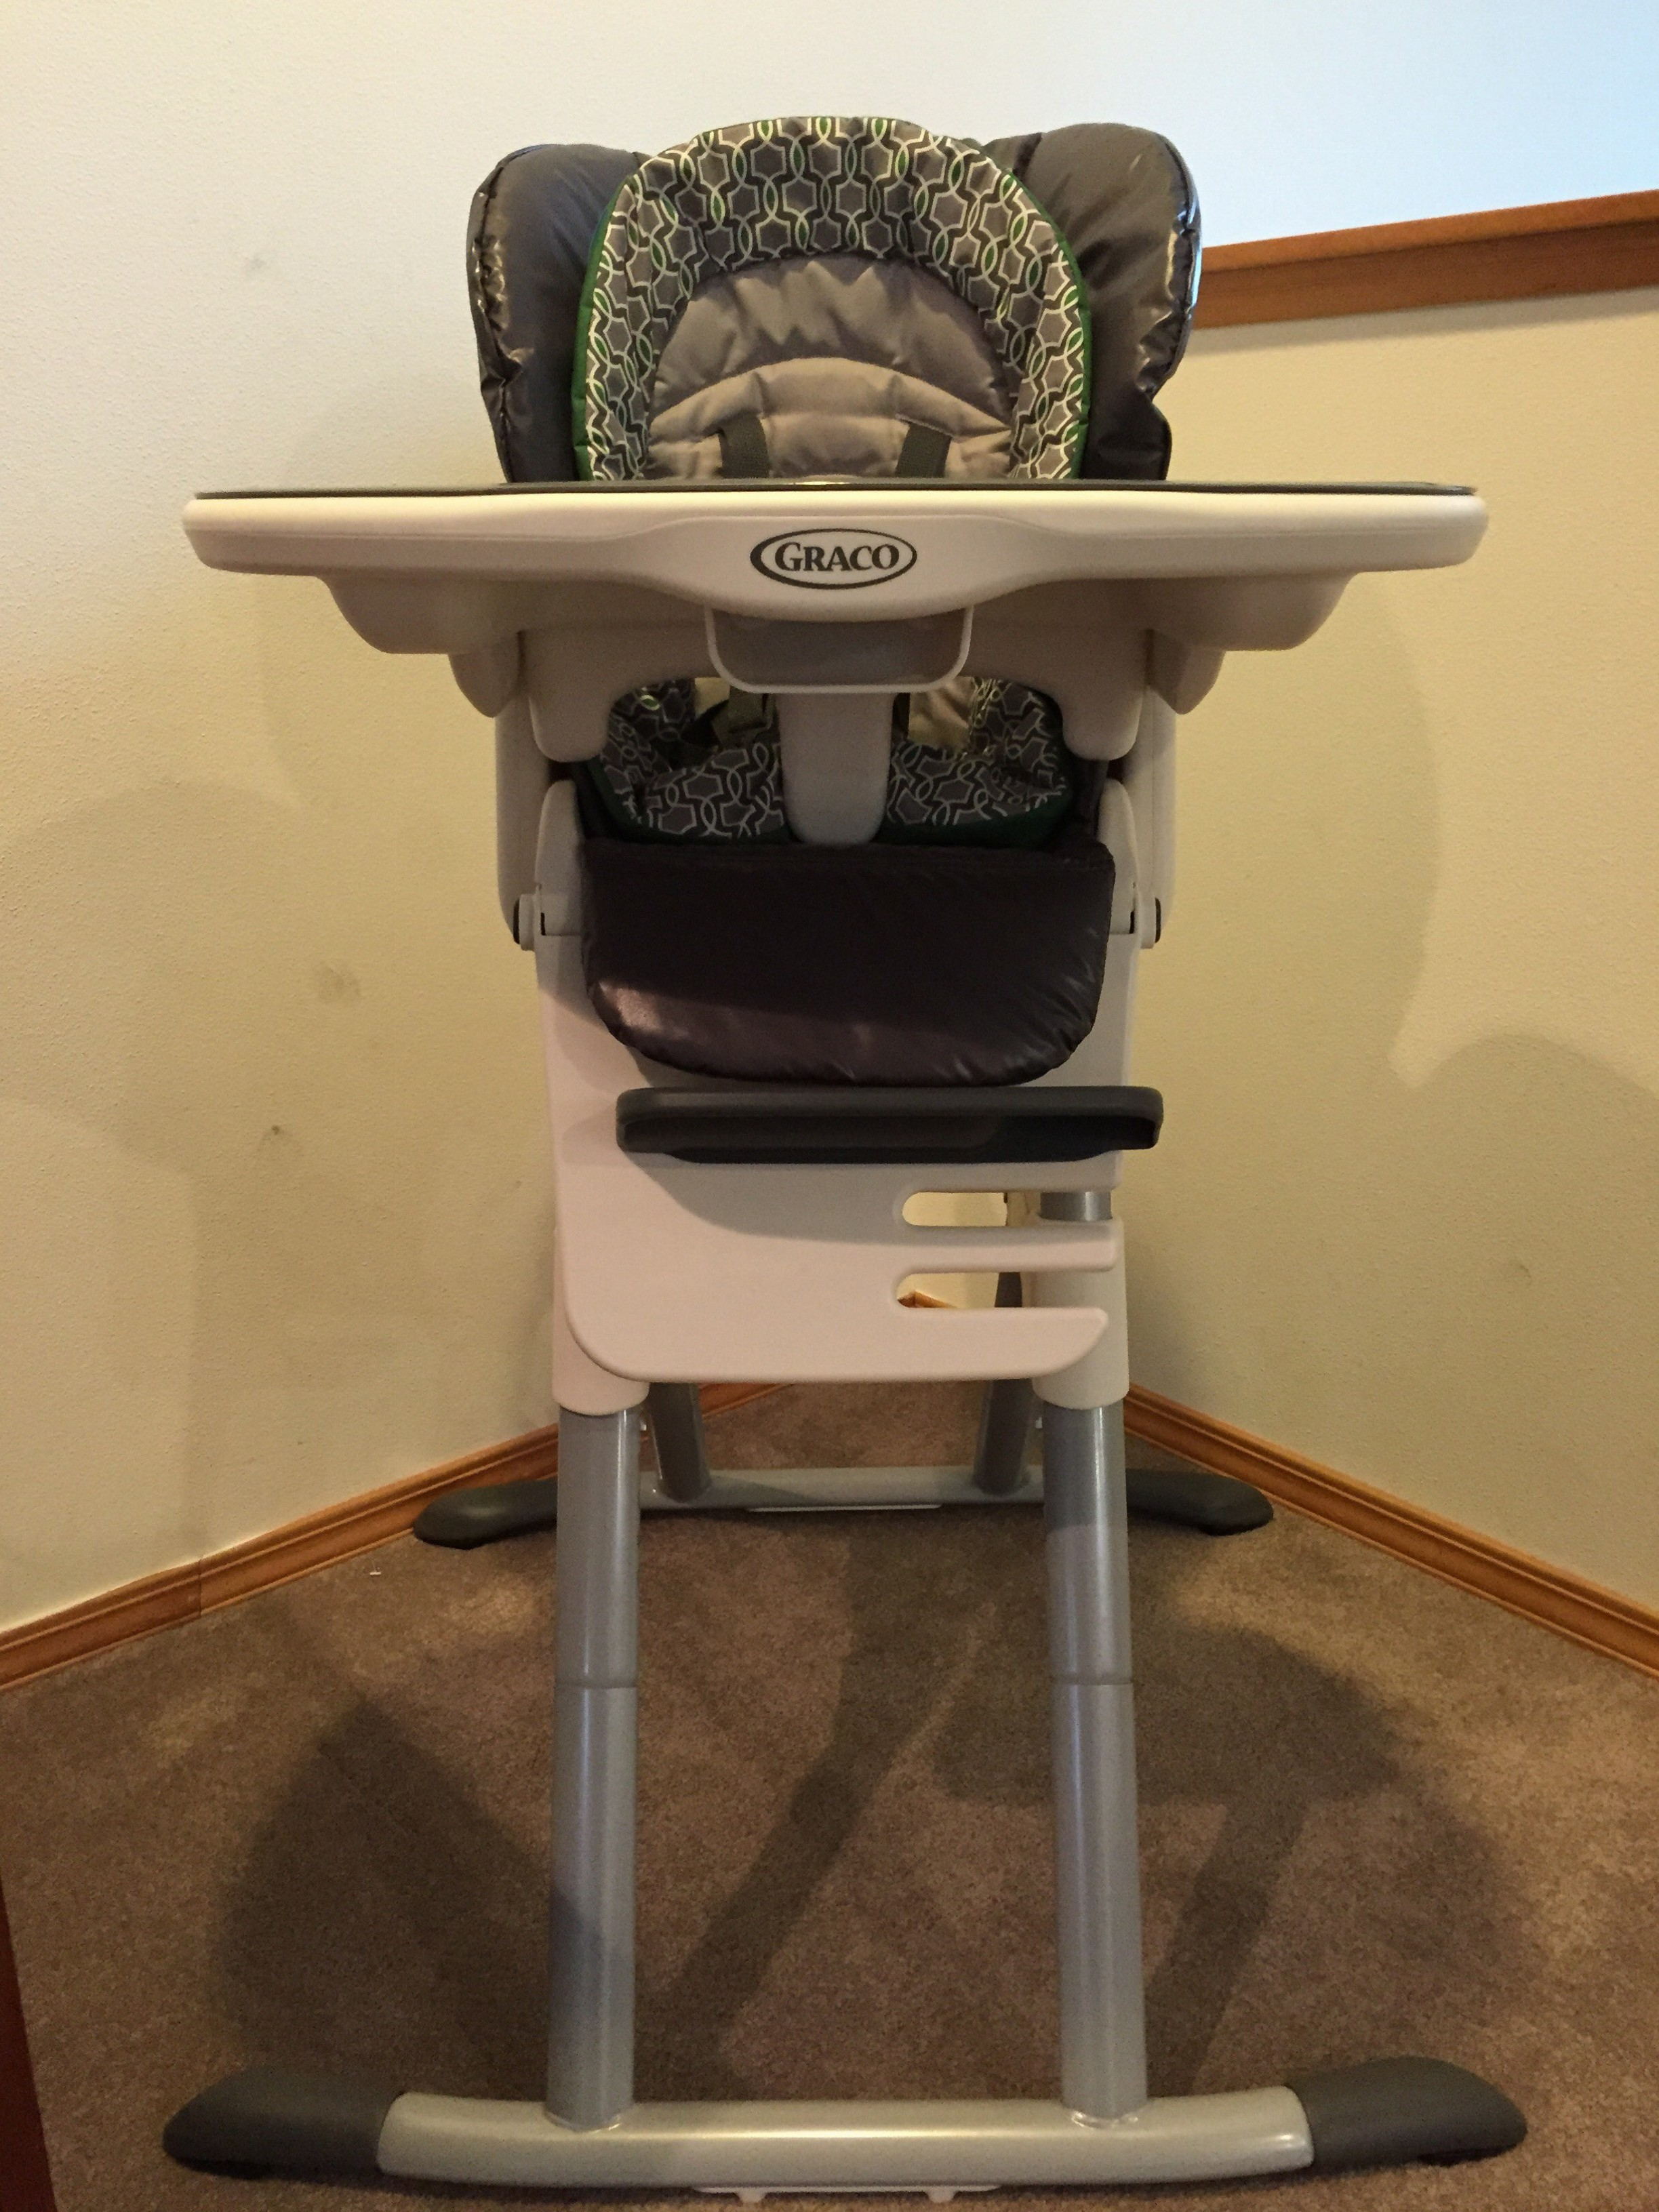 New Products from Graco Baby Registry Must Haves